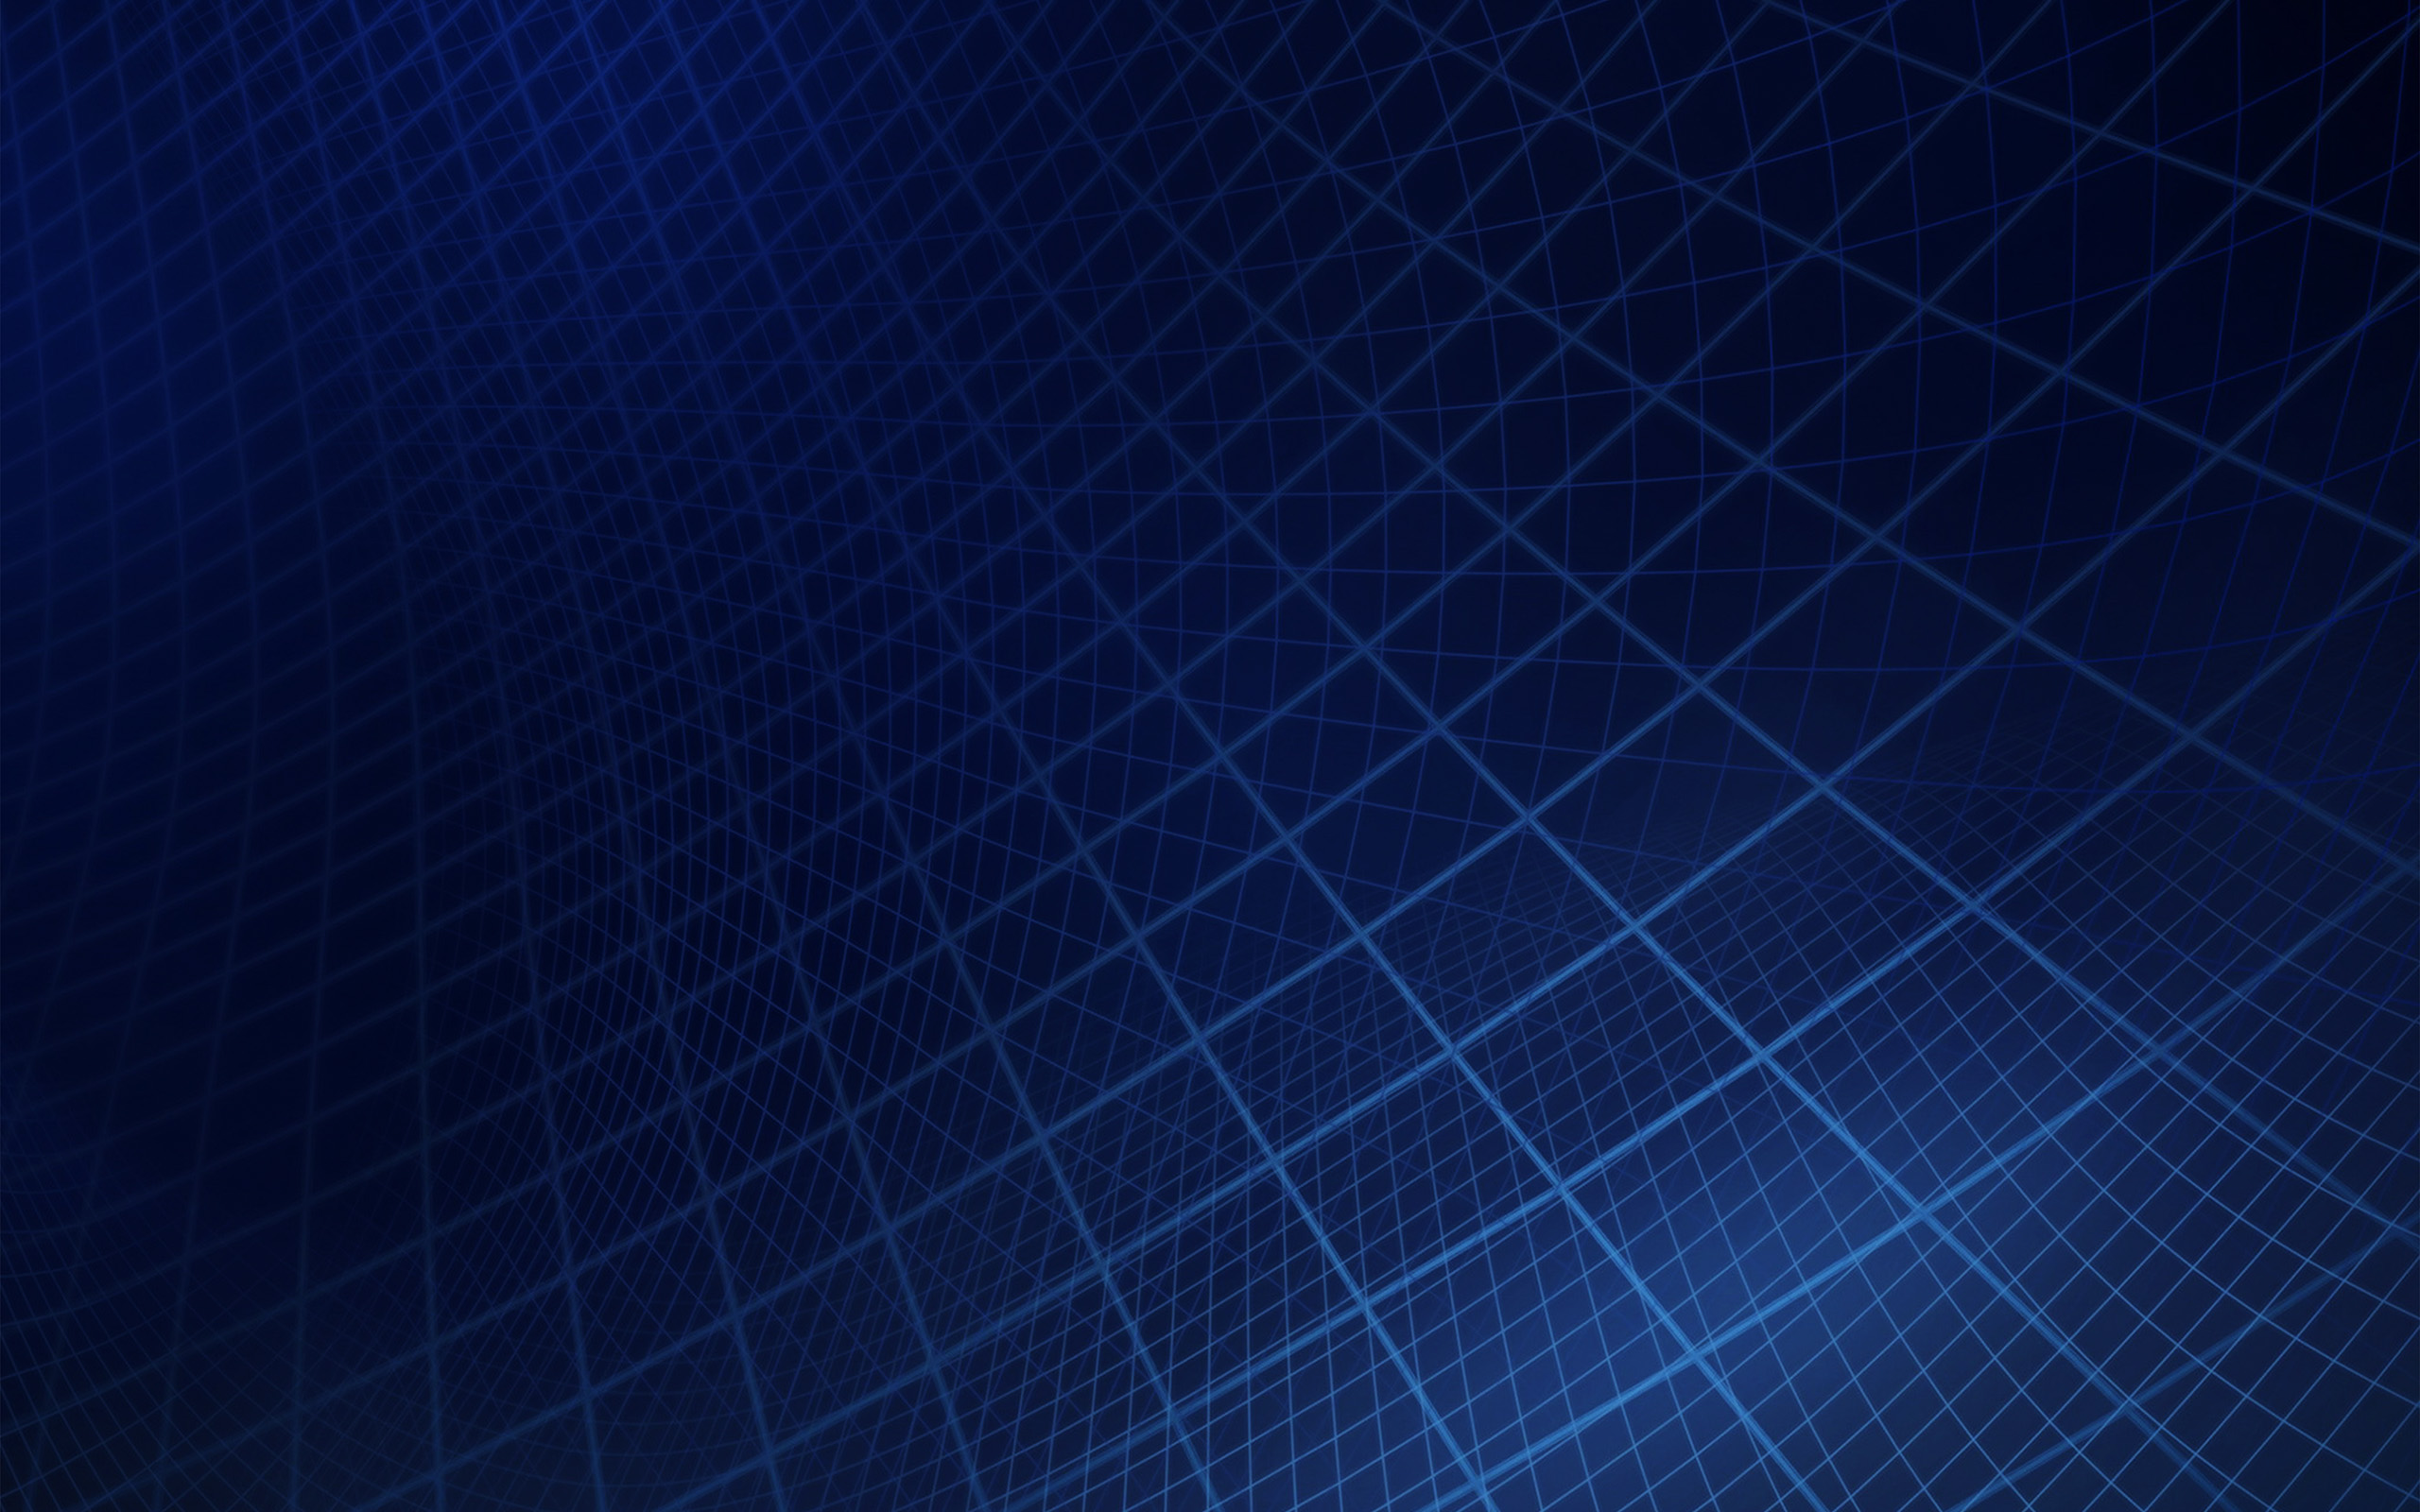 Iphone Android Desktop Backgrounds: Vt16-abstract-line-digital-dark-blue-pattern-wallpaper